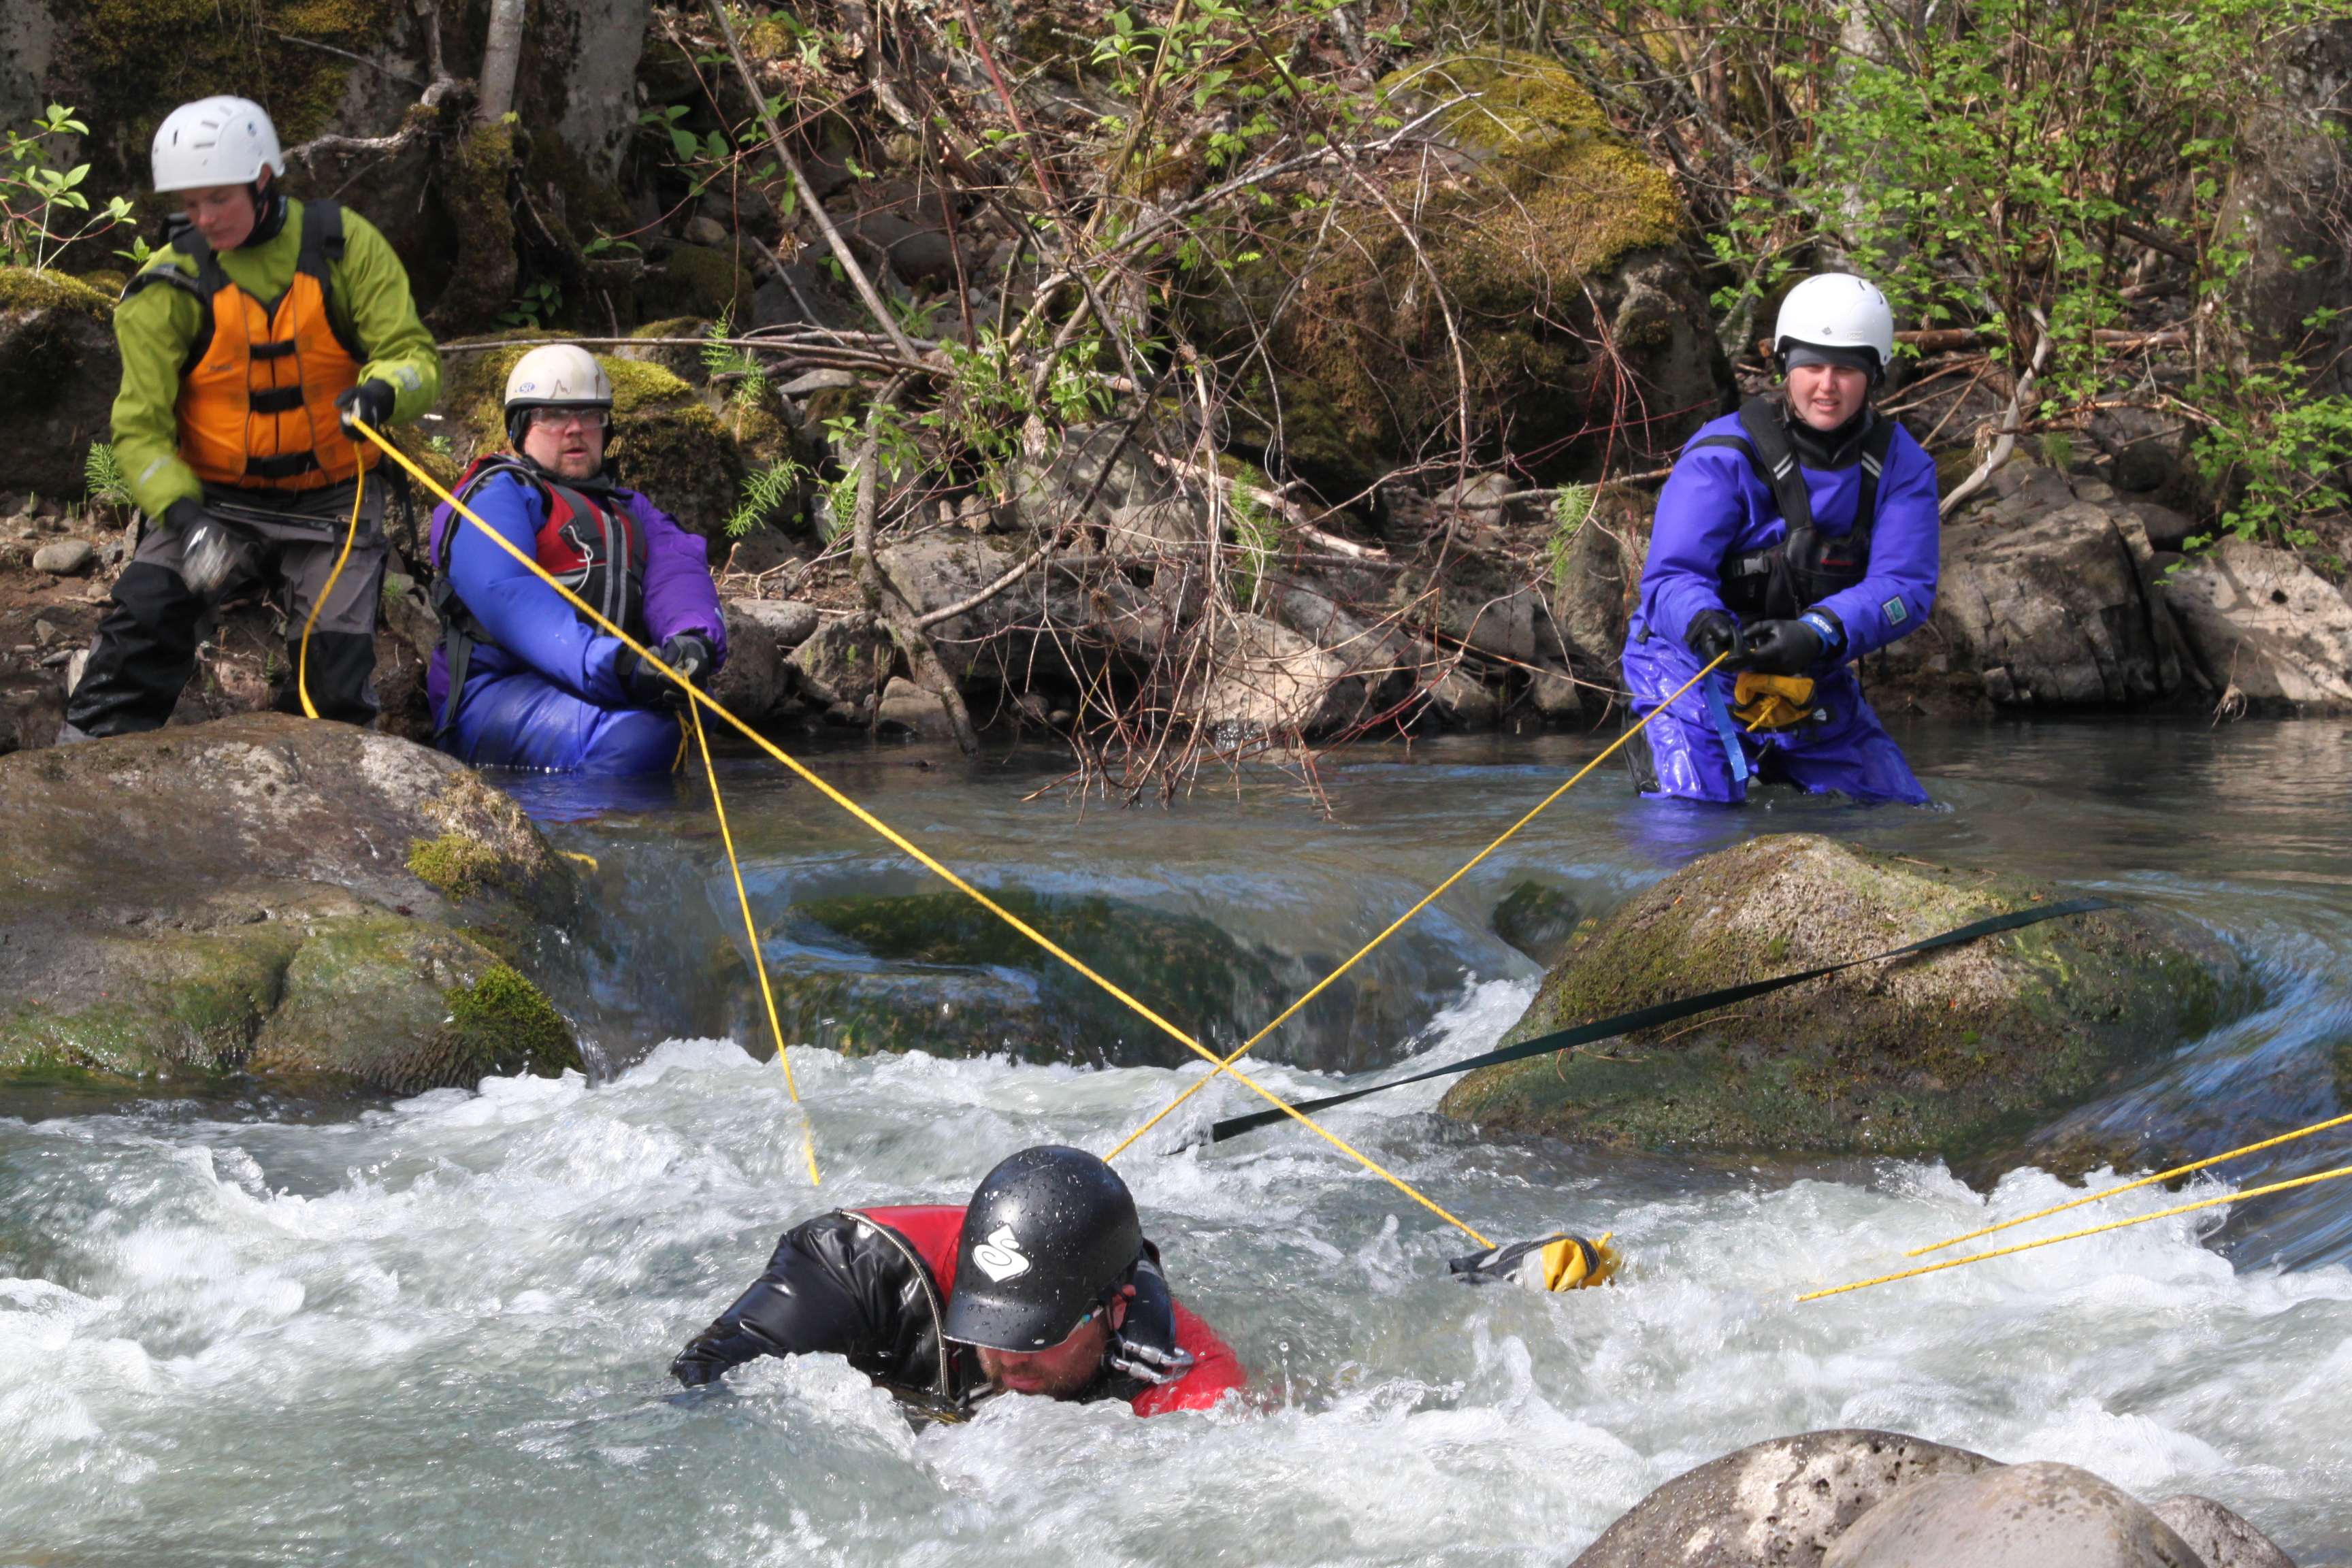 swift water river rescue course